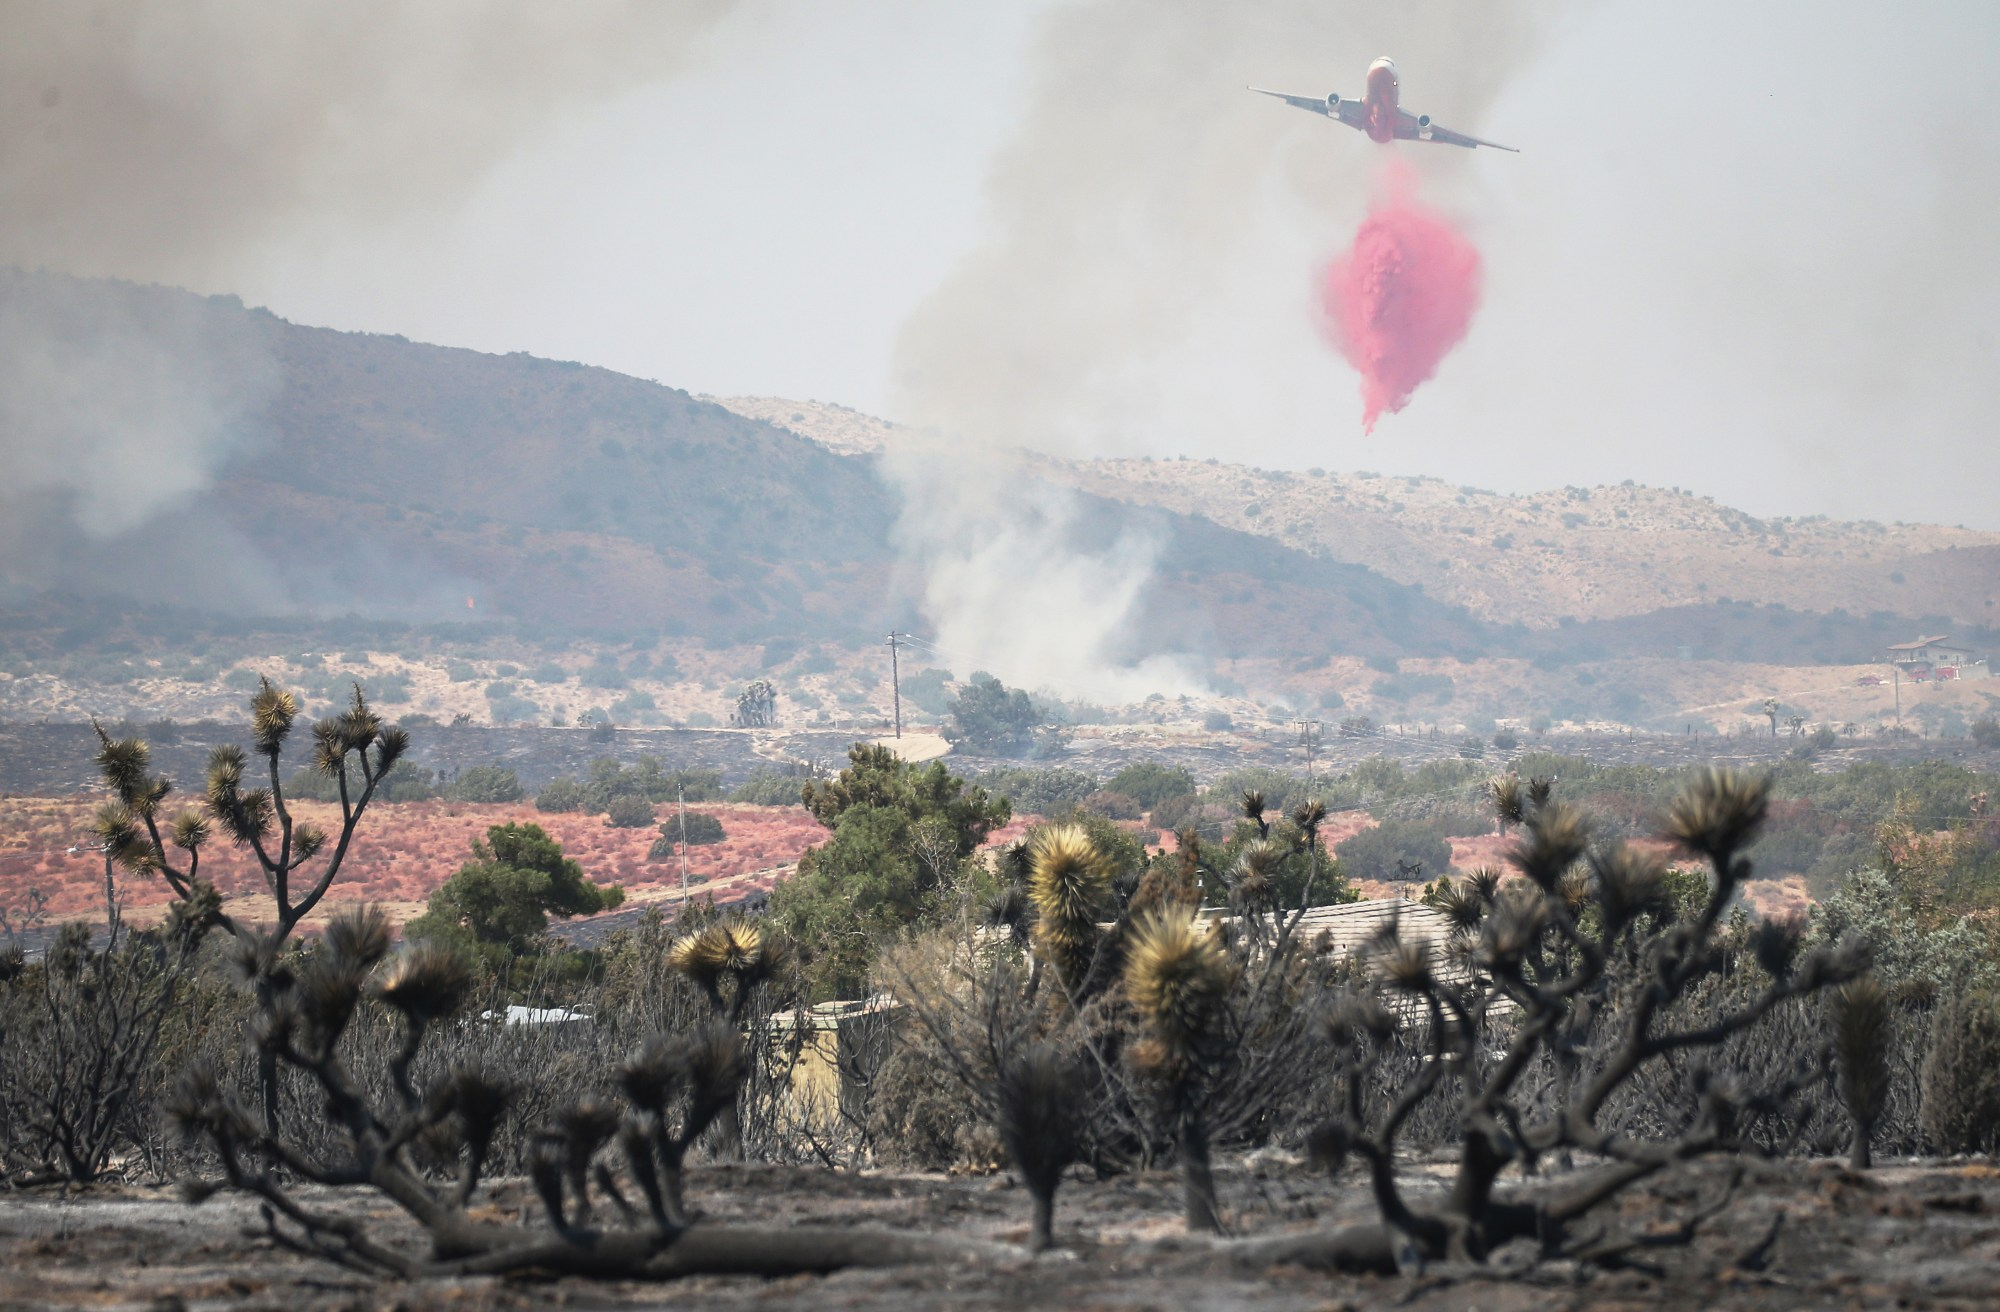 A firefighting aircraft drops the fire retardant Phos-Chek as the Bobcat Fire continues to burn on Sept. 19, 2020 in Juniper Hills, California. (Mario Tama/Getty Images)